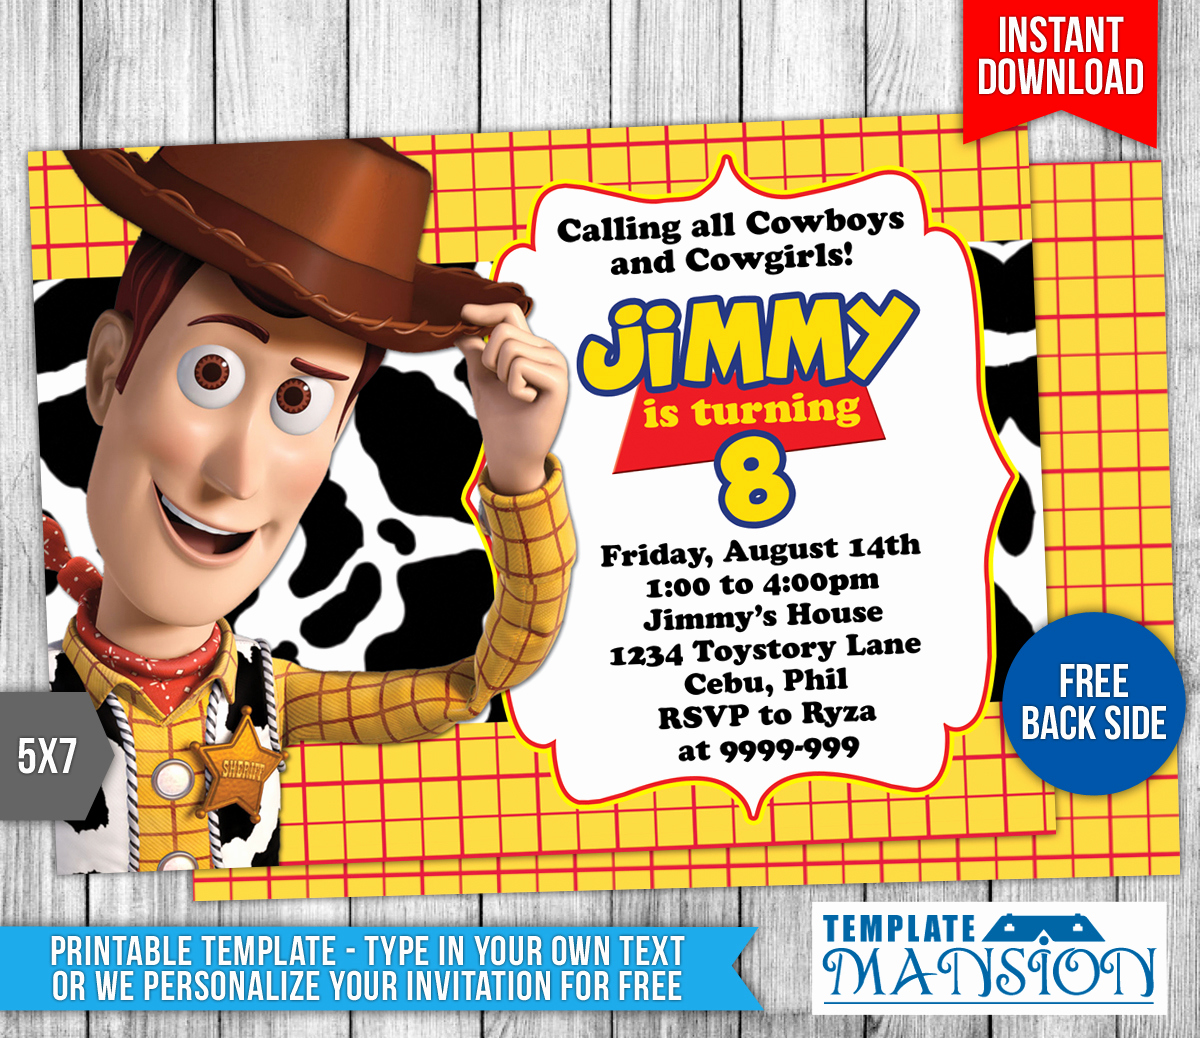 Free toy Story Invitation Template Beautiful Woody toys Story Birthday Invitation by Templatemansion On